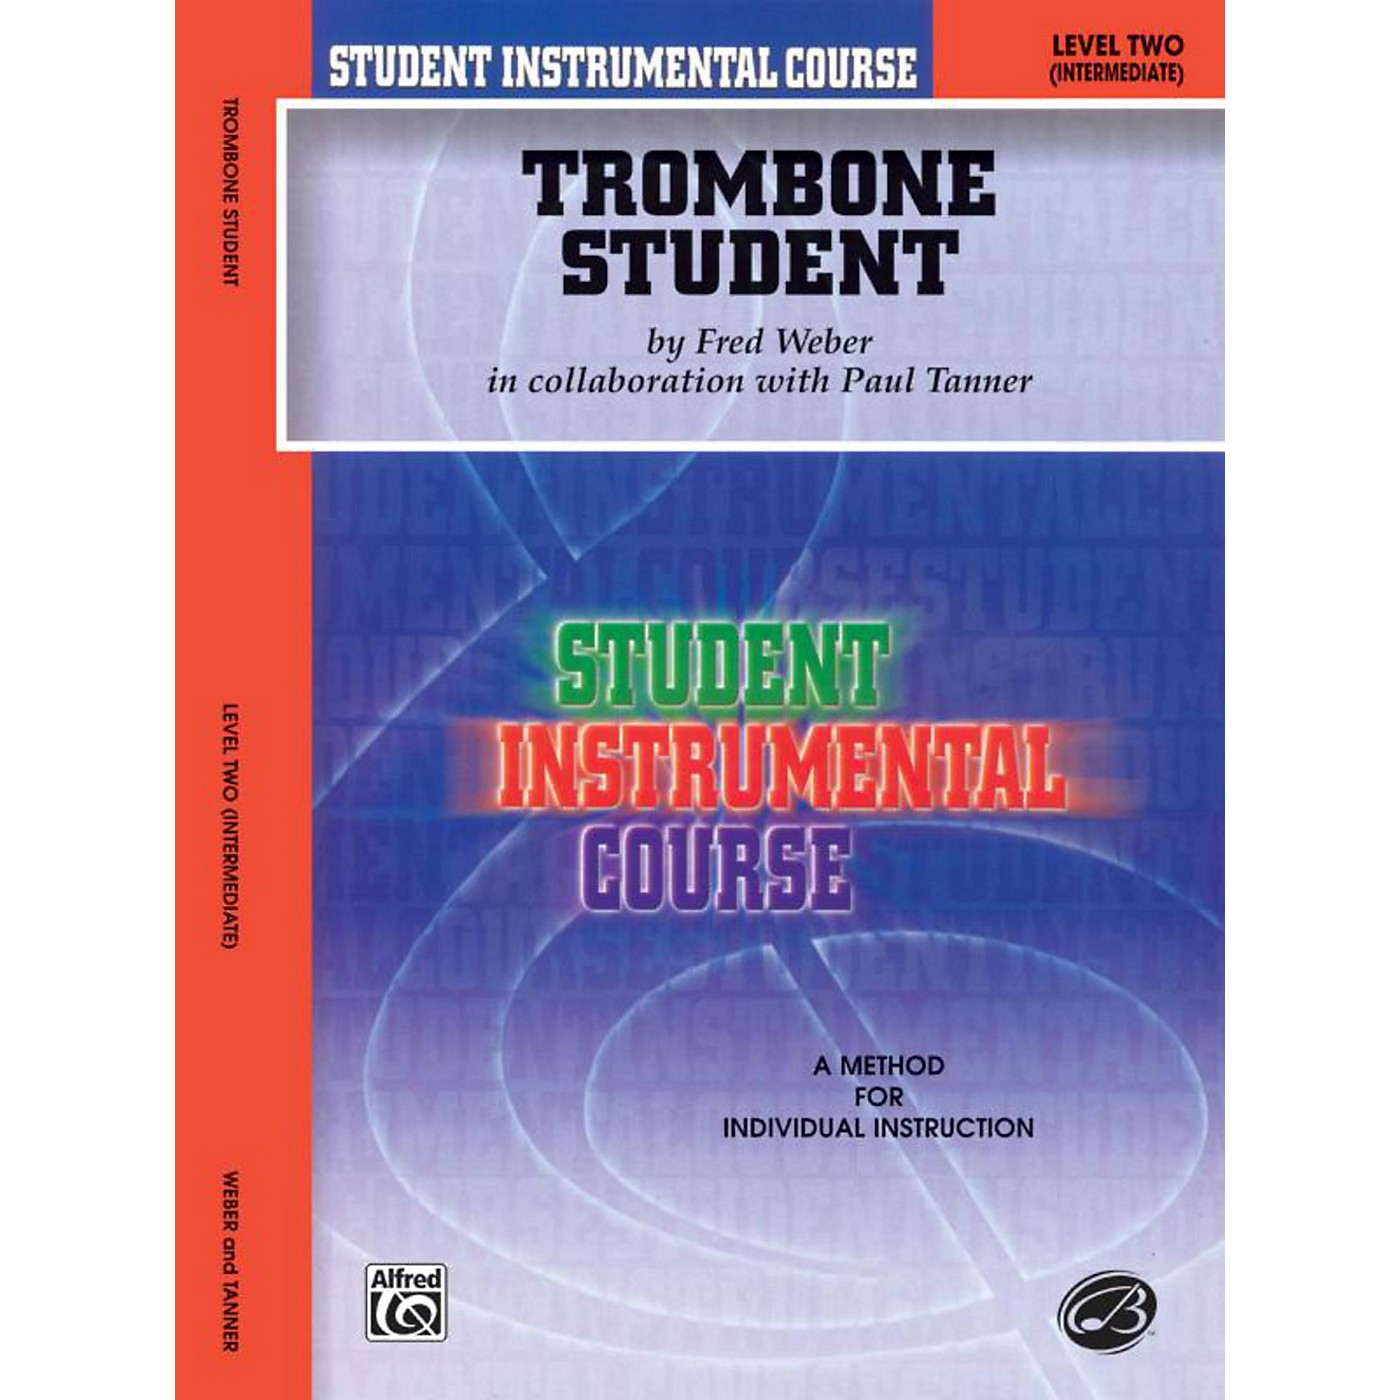 Alfred Student Instrumental Course Trombone Student Level 2 Book thumbnail